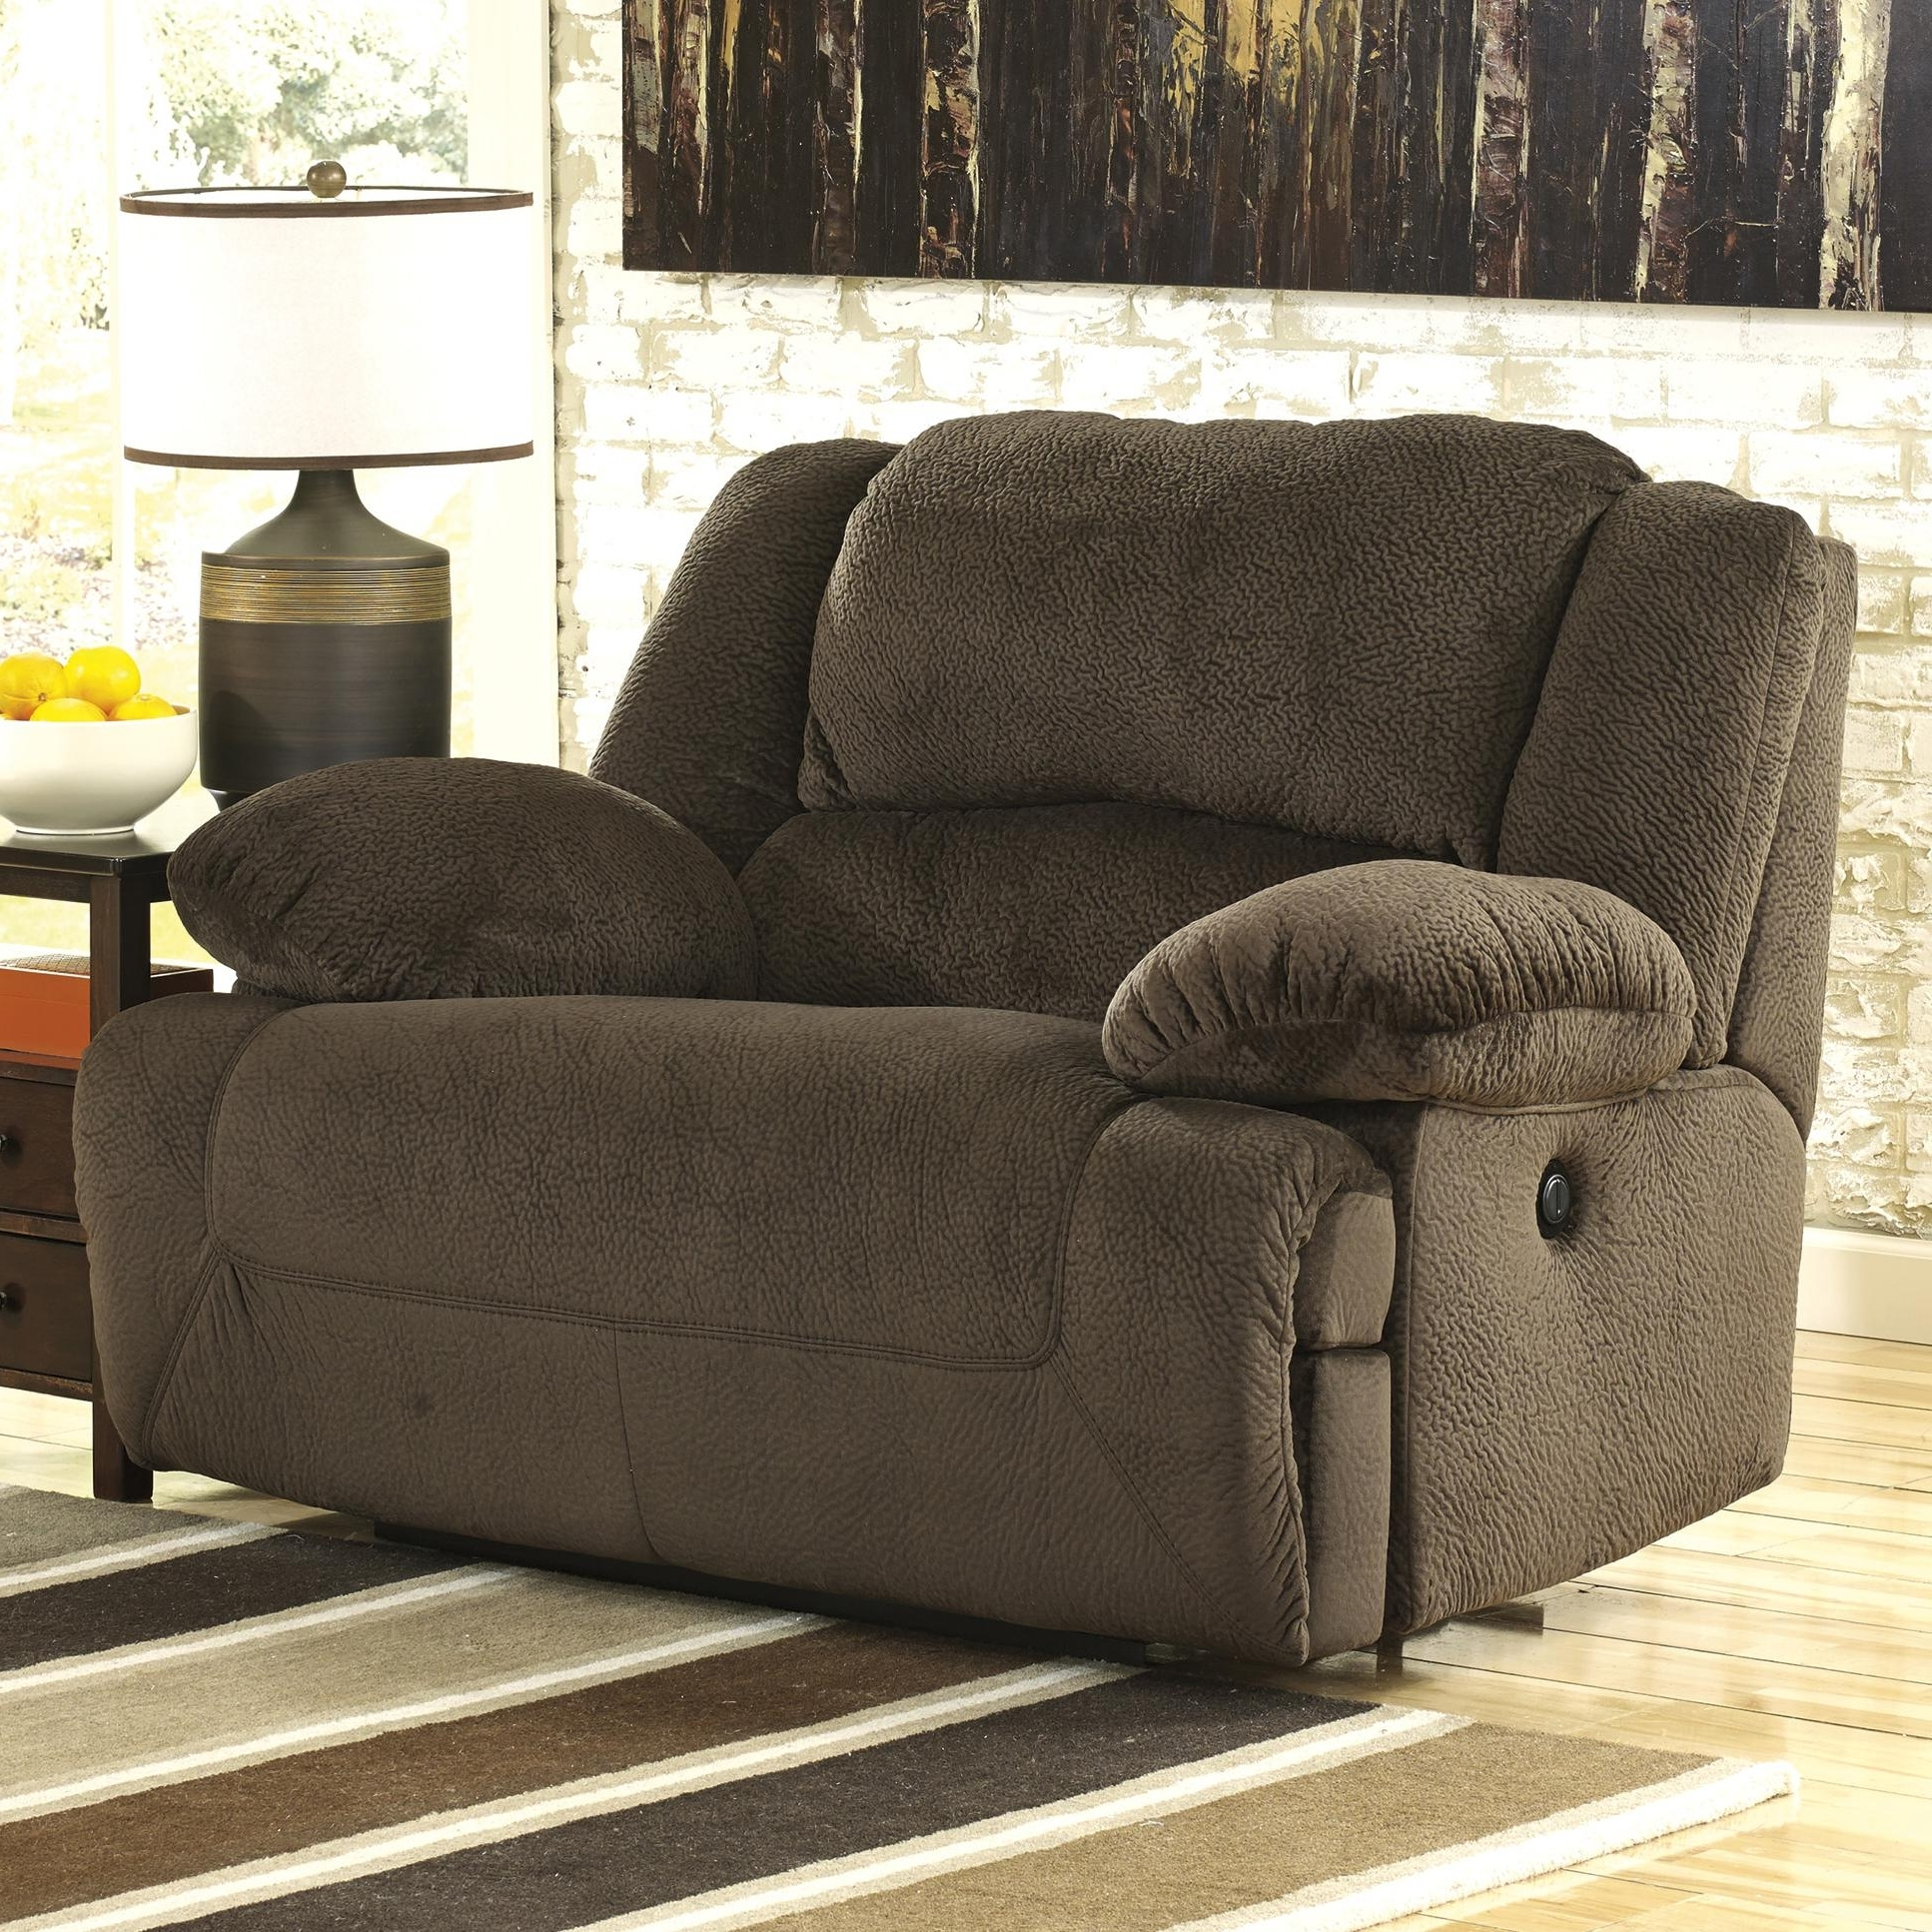 Most Recent Wide Sofa Chairs Intended For Signature Designashley Toletta – Chocolate Wide Seat Power (View 6 of 20)